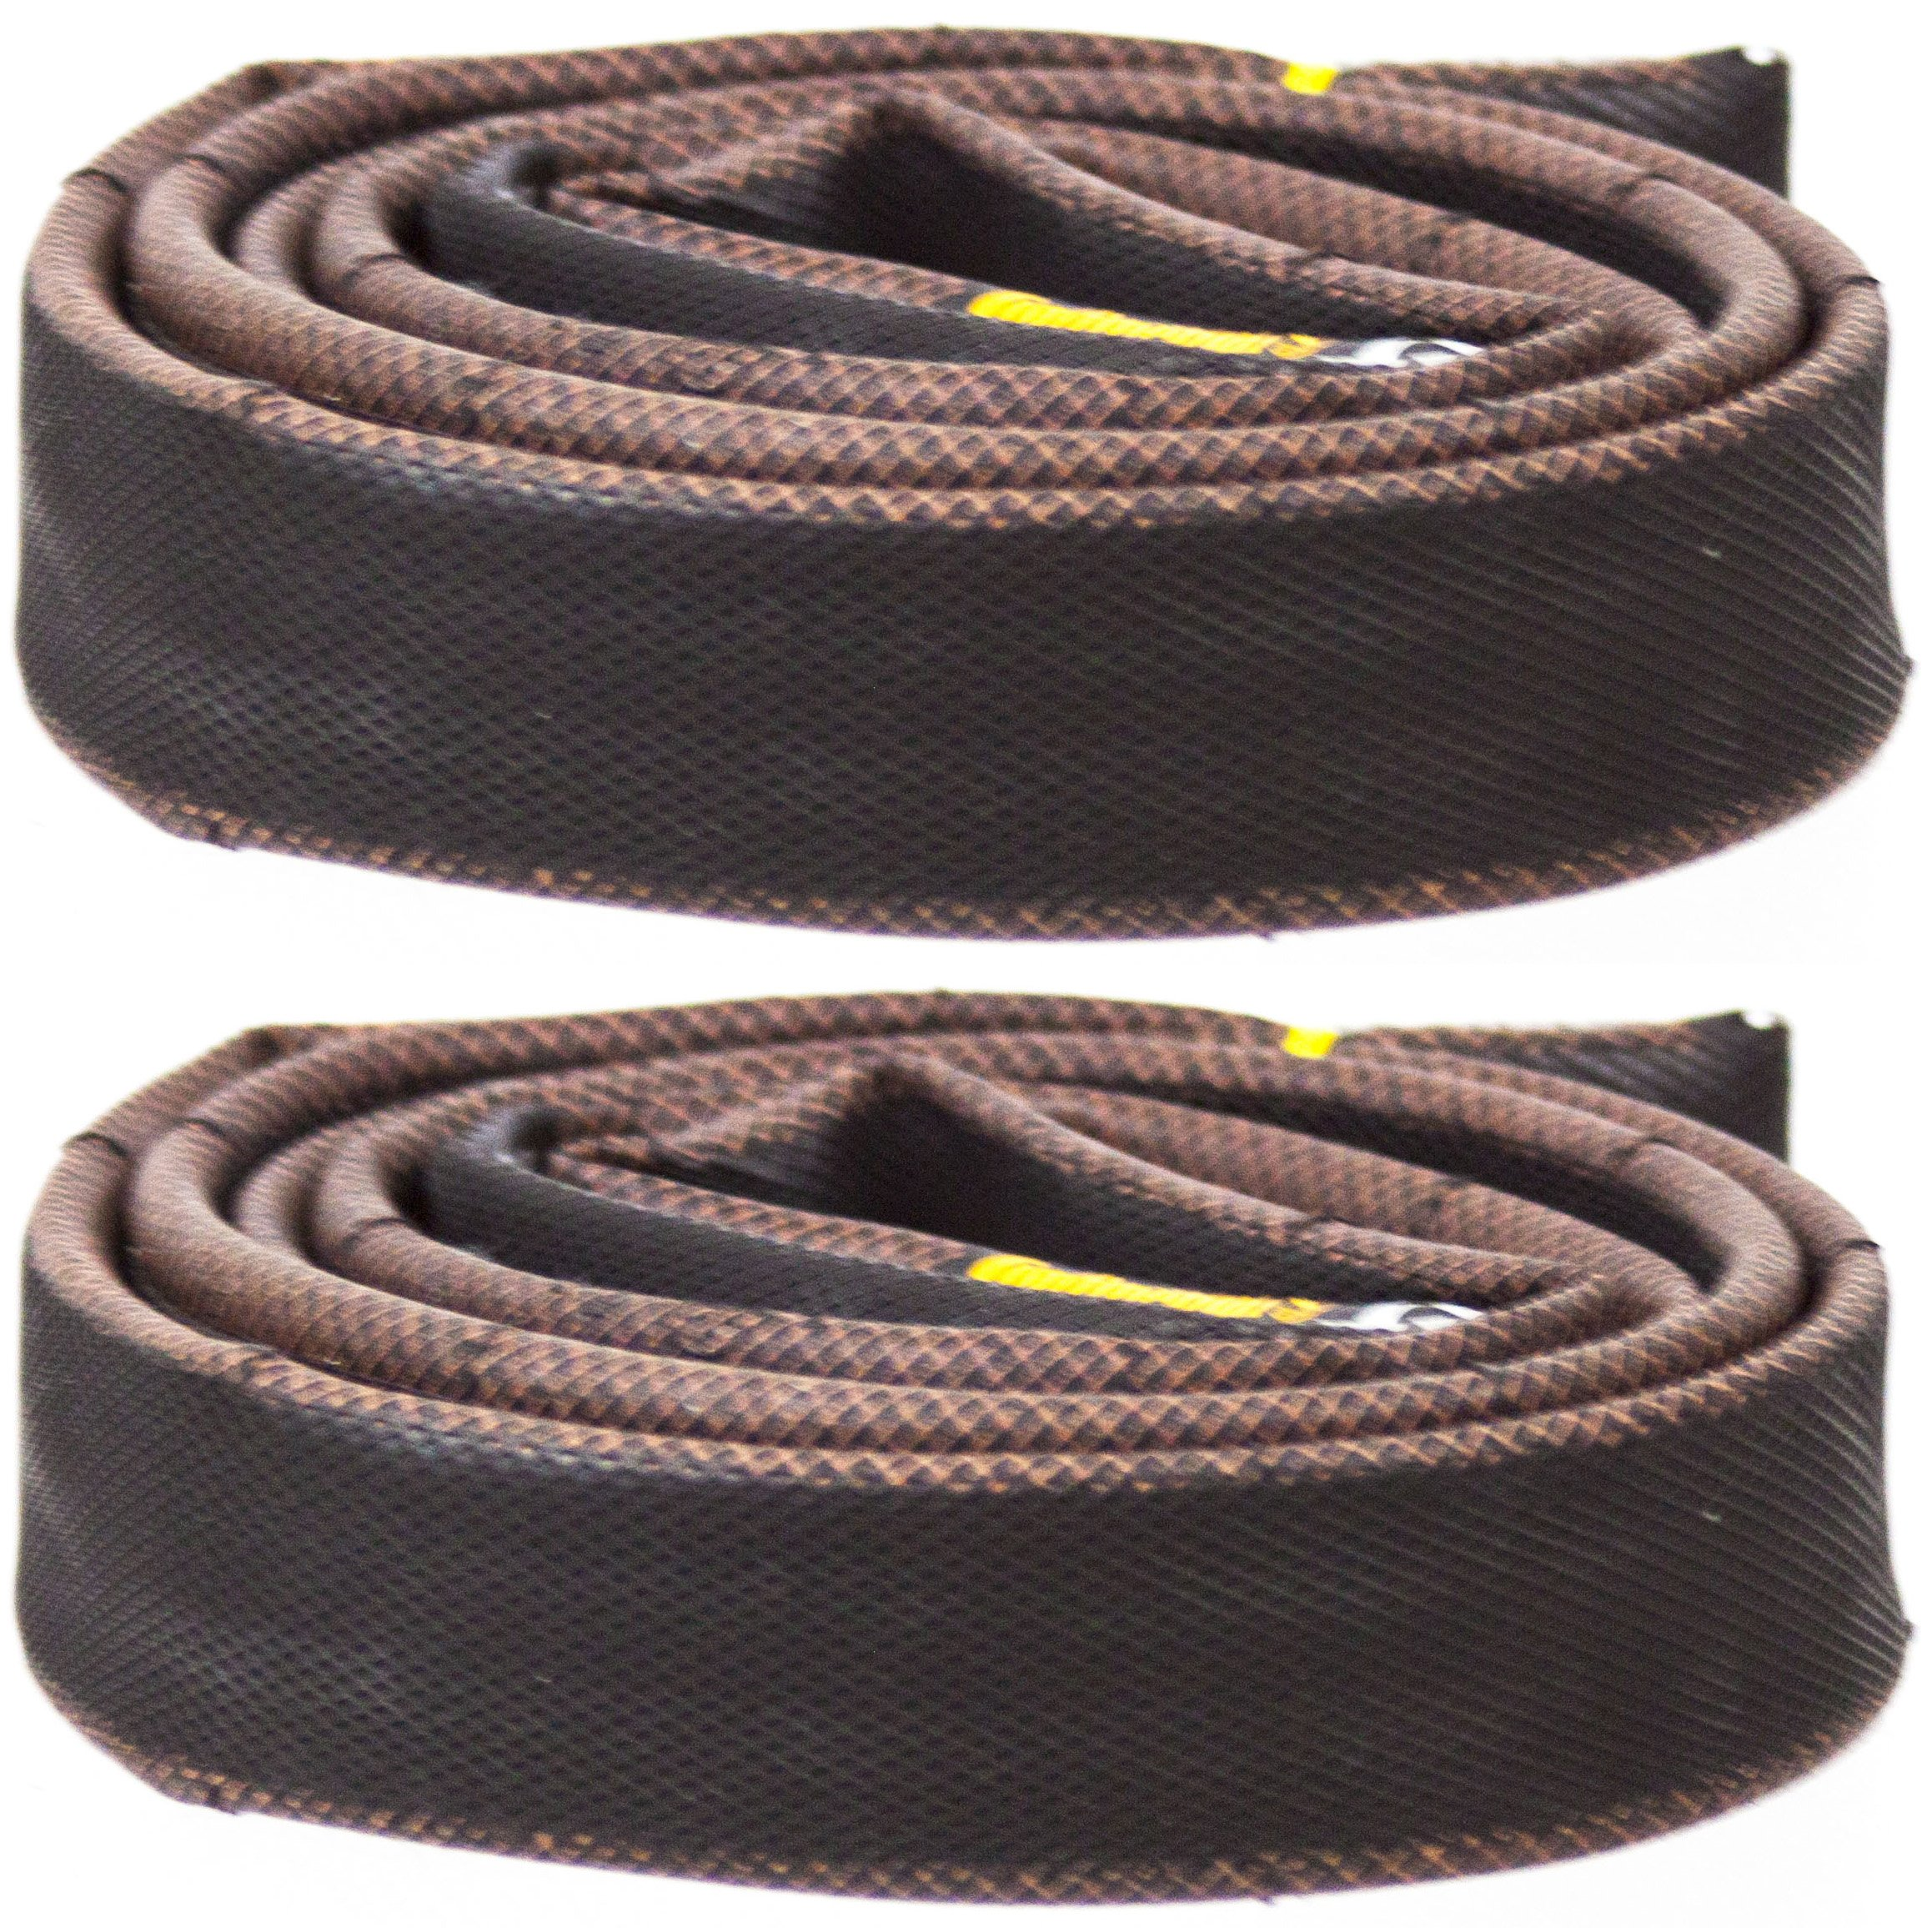 2 Pack - Continental Sprinter Gatorskin Tubular Tire 28''x 22 mm by Continental (Image #1)